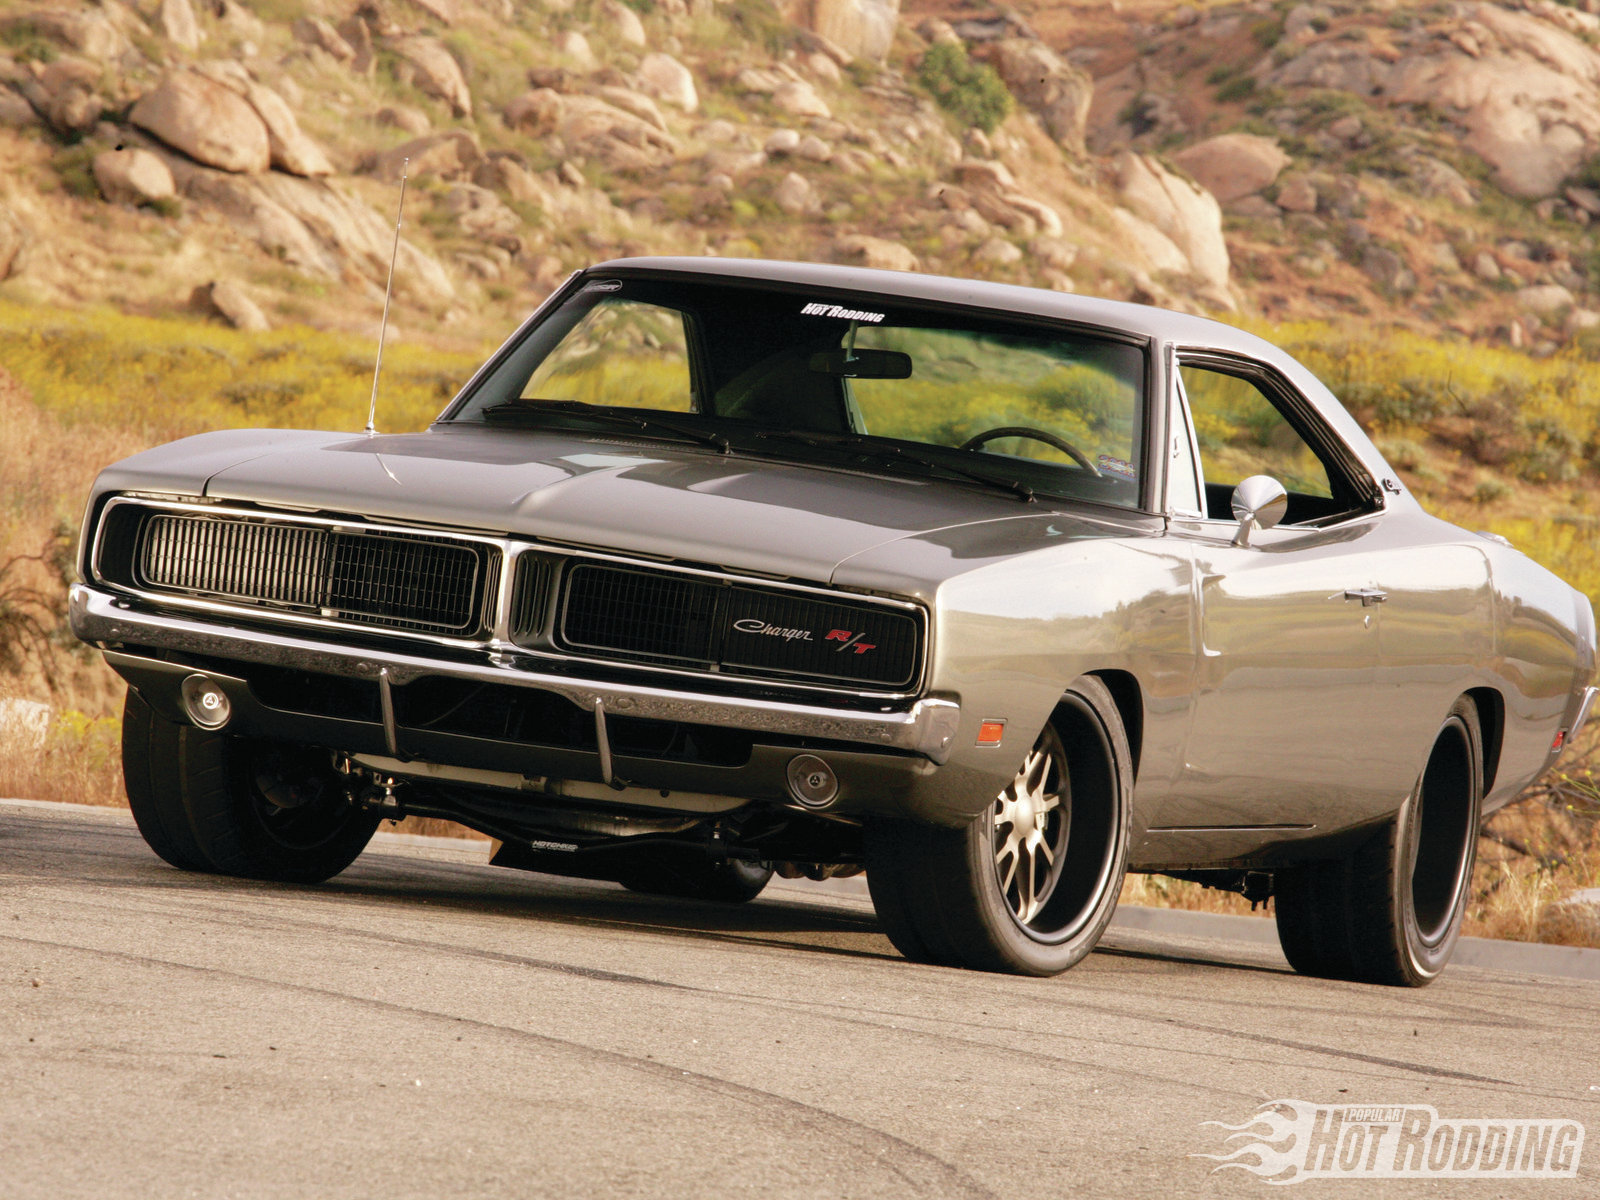 40 Stylish Car Wallpapers also Do Cast Fast Furious Drive  plete Guide Movie Cars likewise 339247784401563676 additionally 1969 Dodge Charger as well Using Subframe Connectors On Your A Body Mopar. on old gtx cars